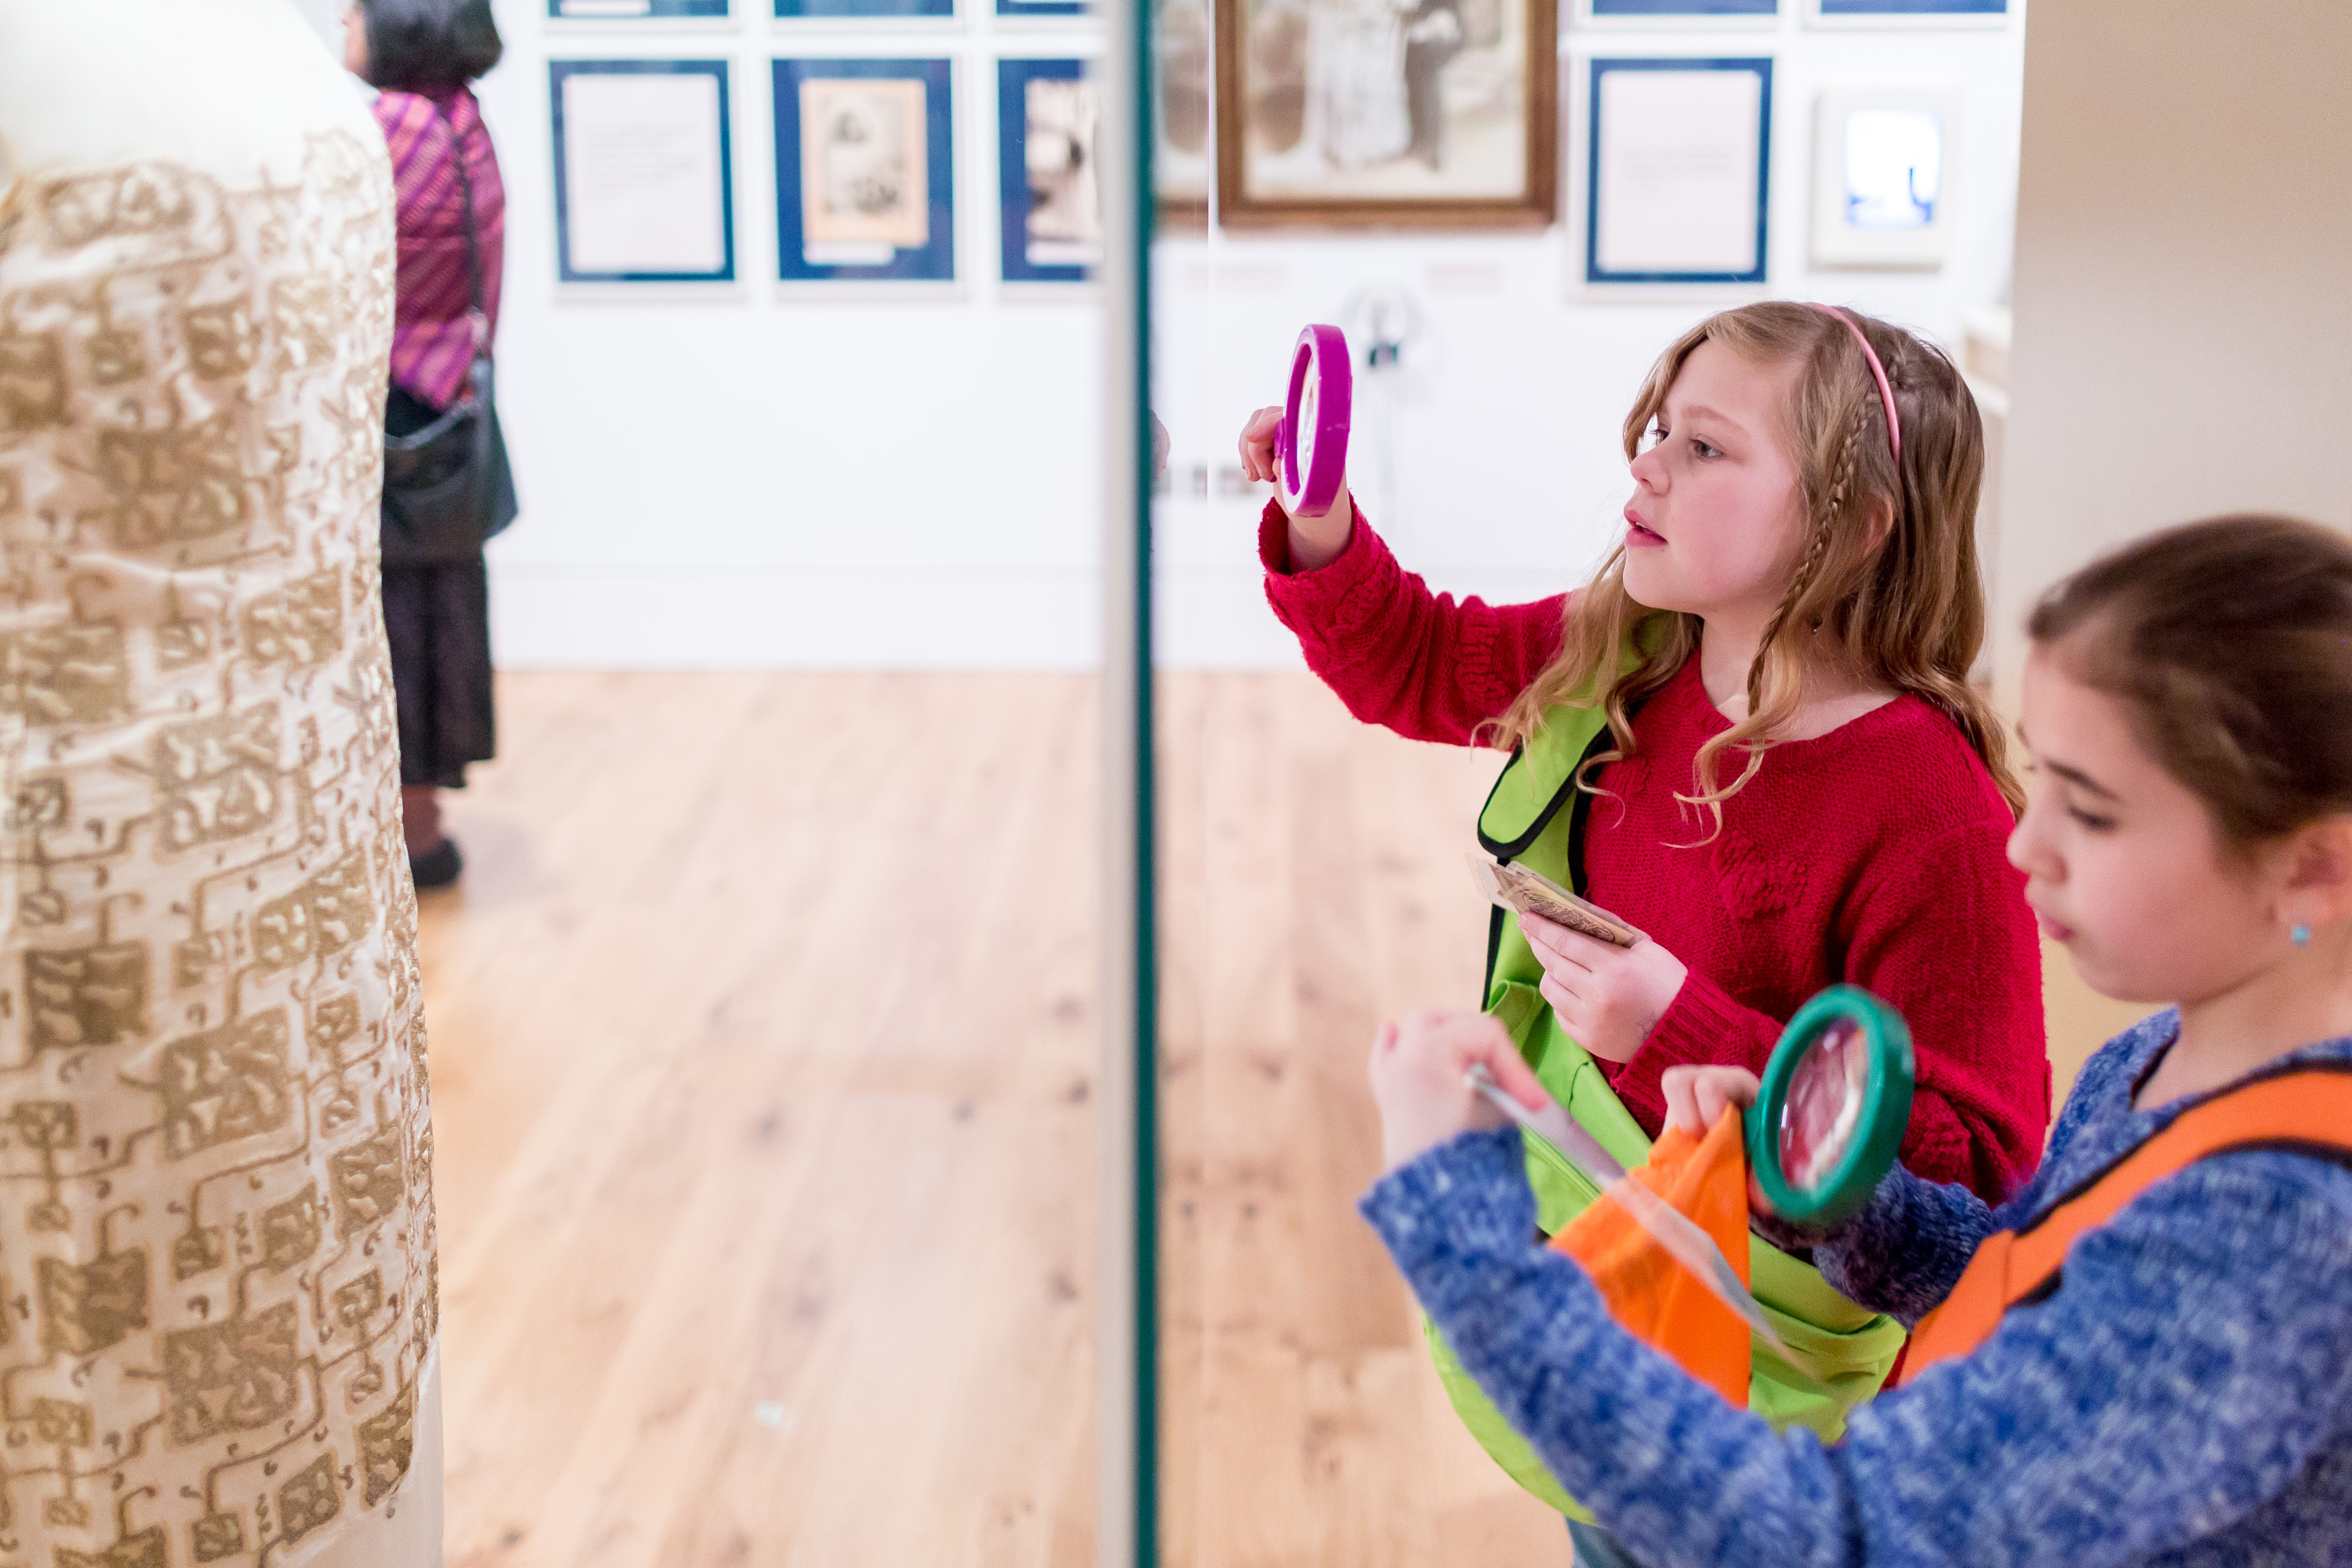 Two children looking at an exhibit